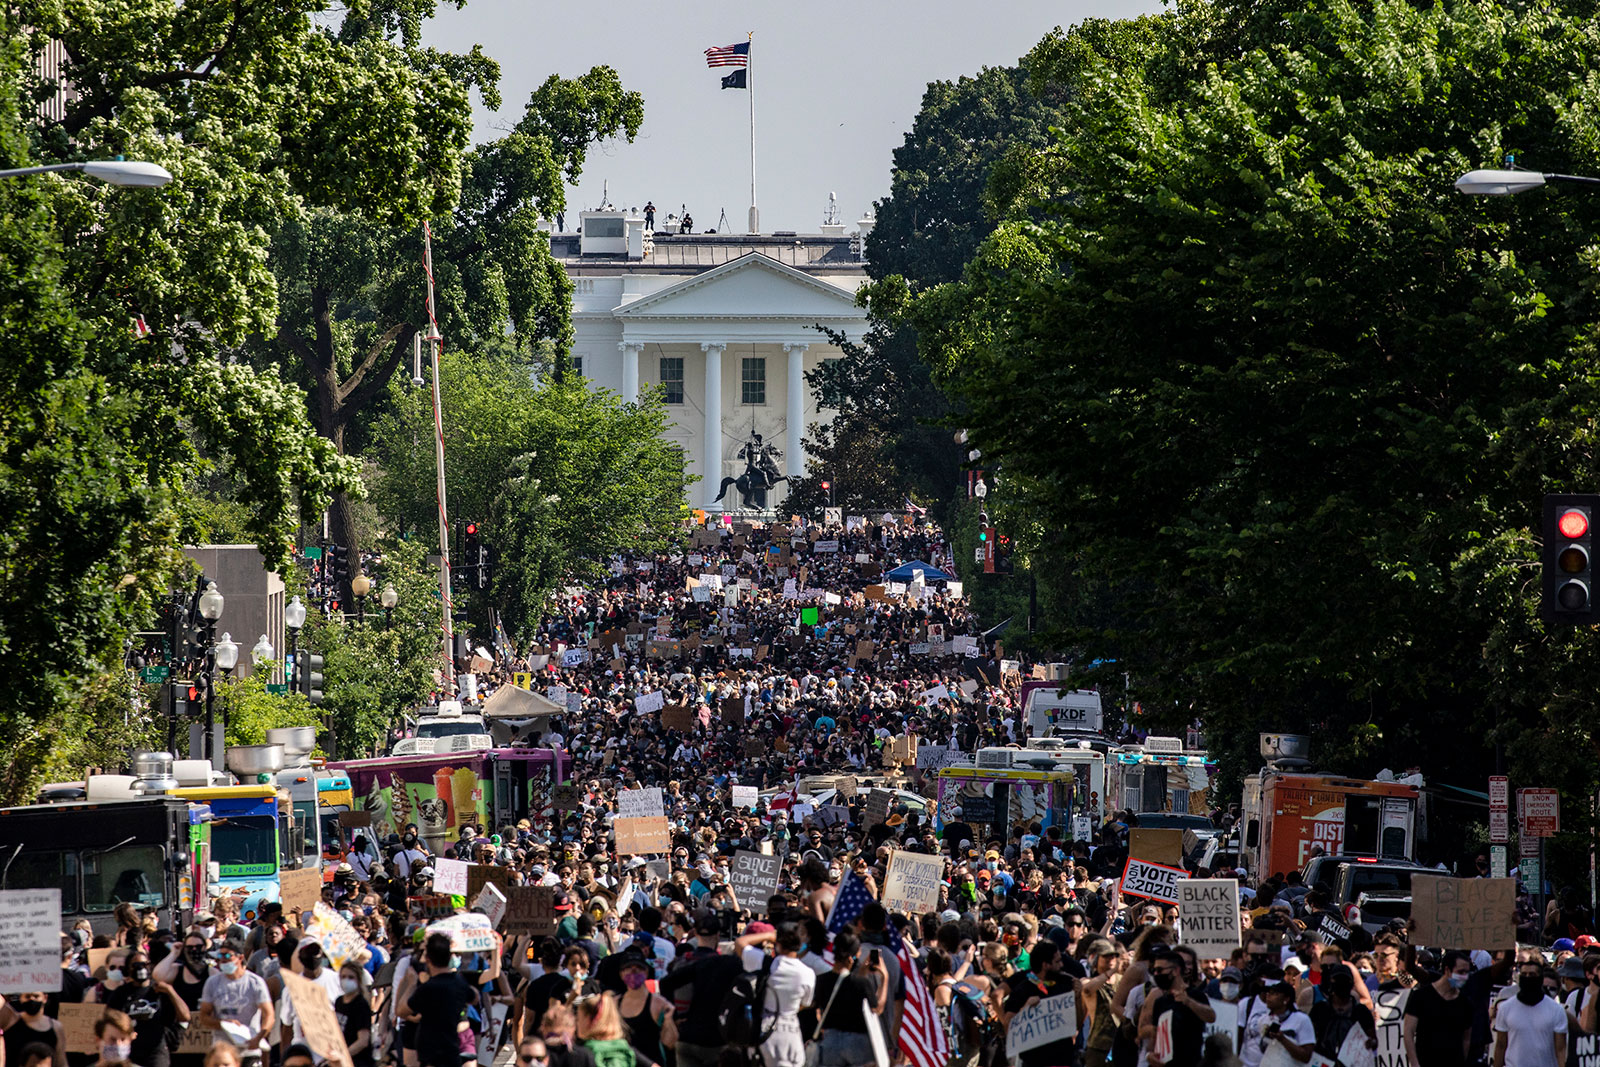 Protestors gather along 16th Street NW near the White House on June 6.